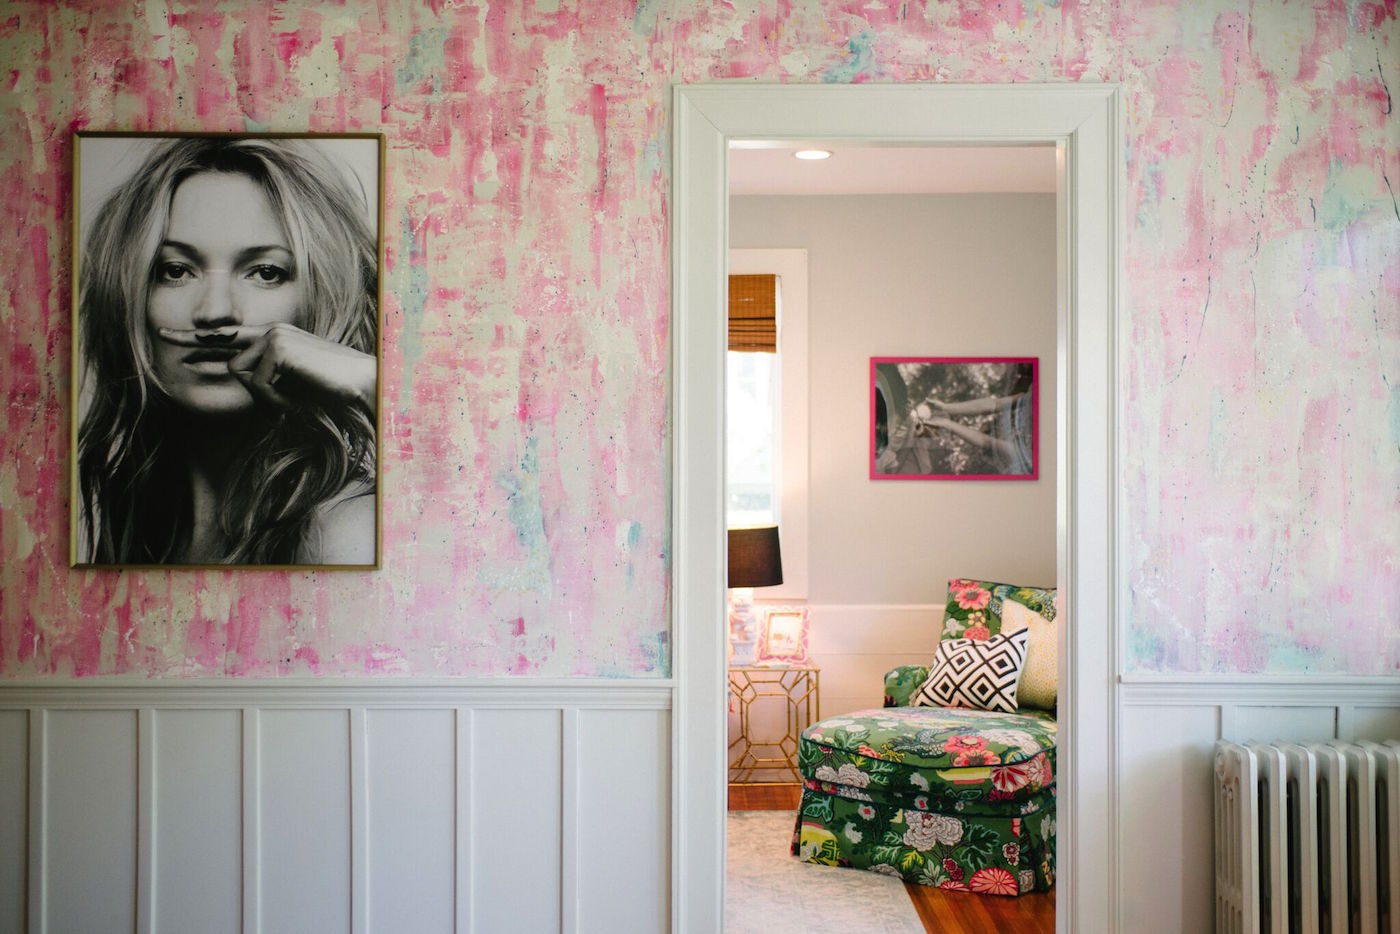 Sarah Loomis Crawford for Design*Sponge